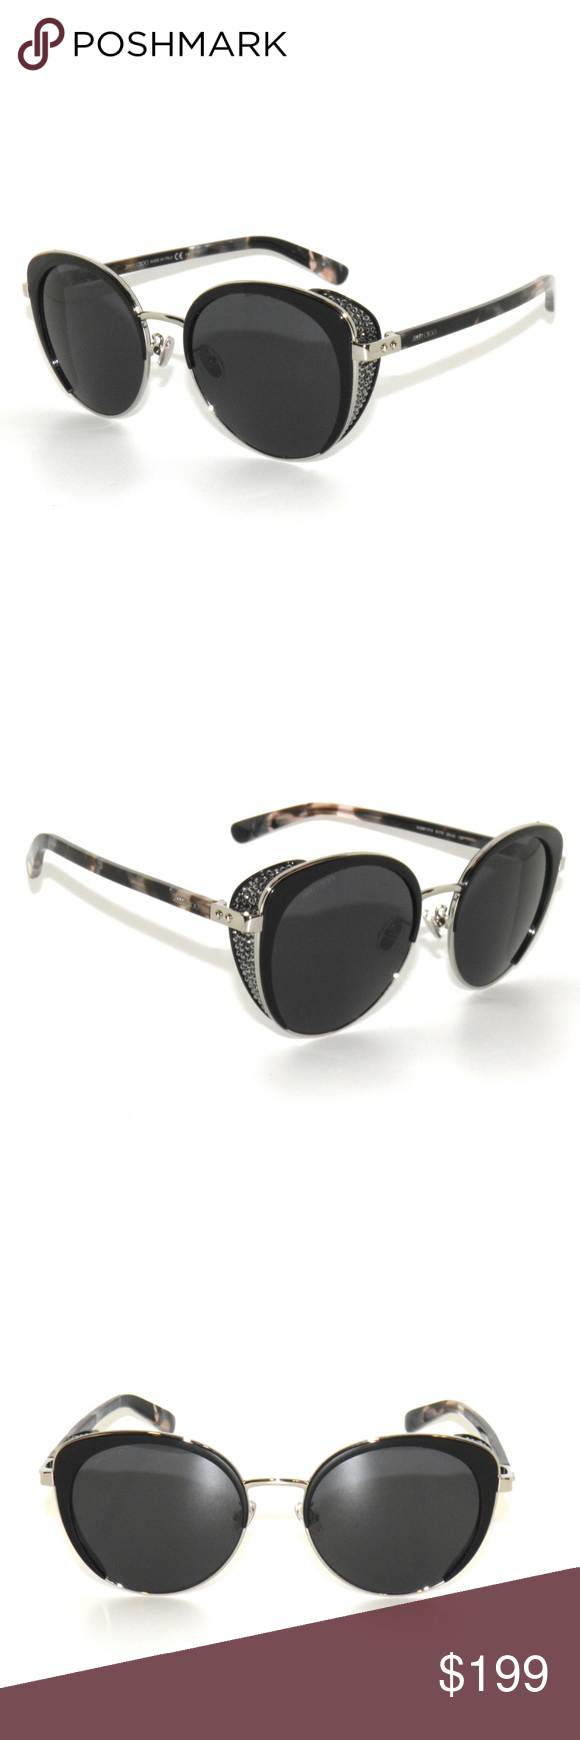 f5fdb5d356bd Jimmy Choo Gabby Strass 807IR Silver Sunglasses Jimmy Choo Gabby Strass  807IR Silver Black Sunglasses.Brand New and Authentic , Comes with Generic  ...